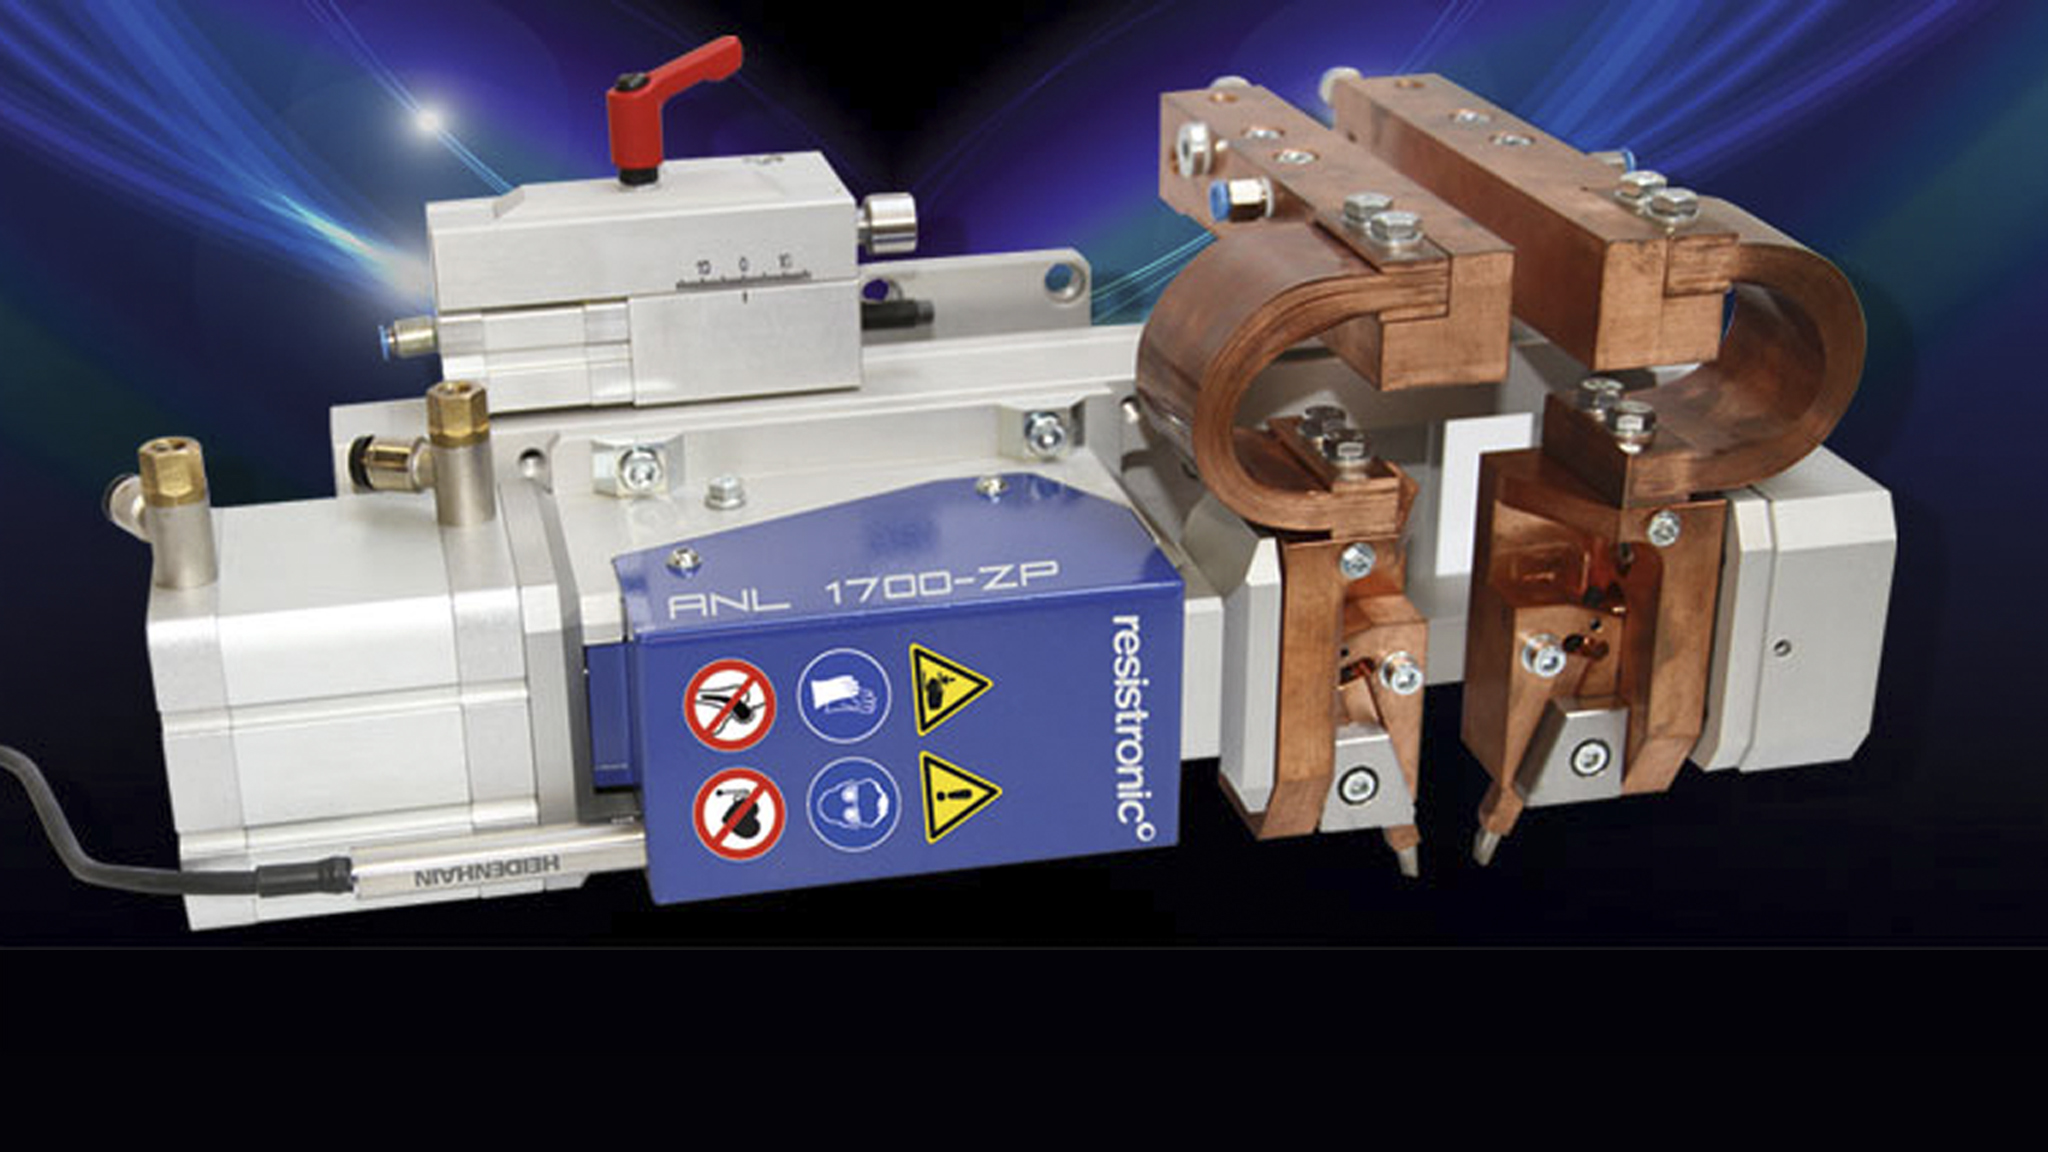 Pneumatic welding heads for micro-resistance welding